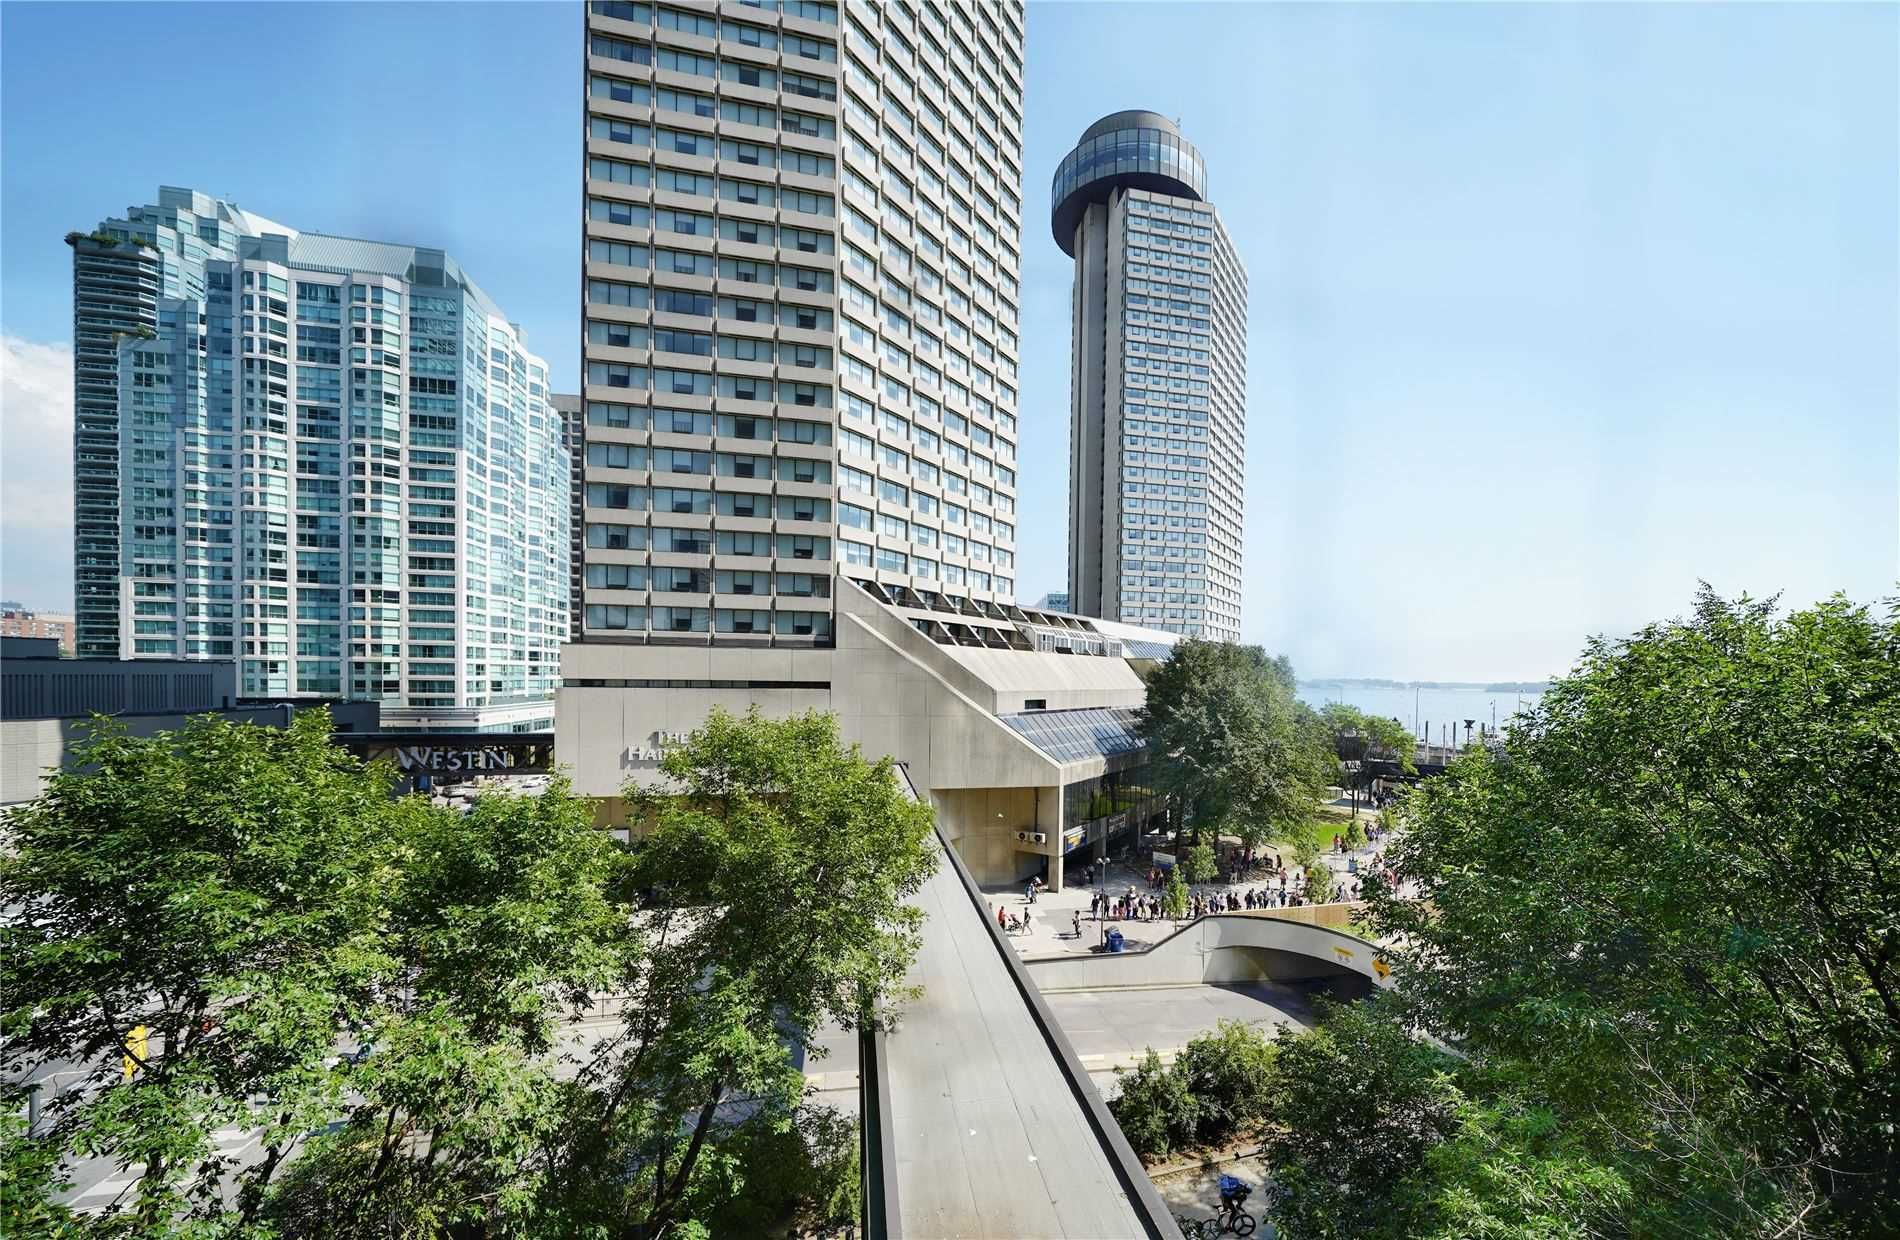 33 Harbour Sq, unit 515 for sale in Toronto - image #2